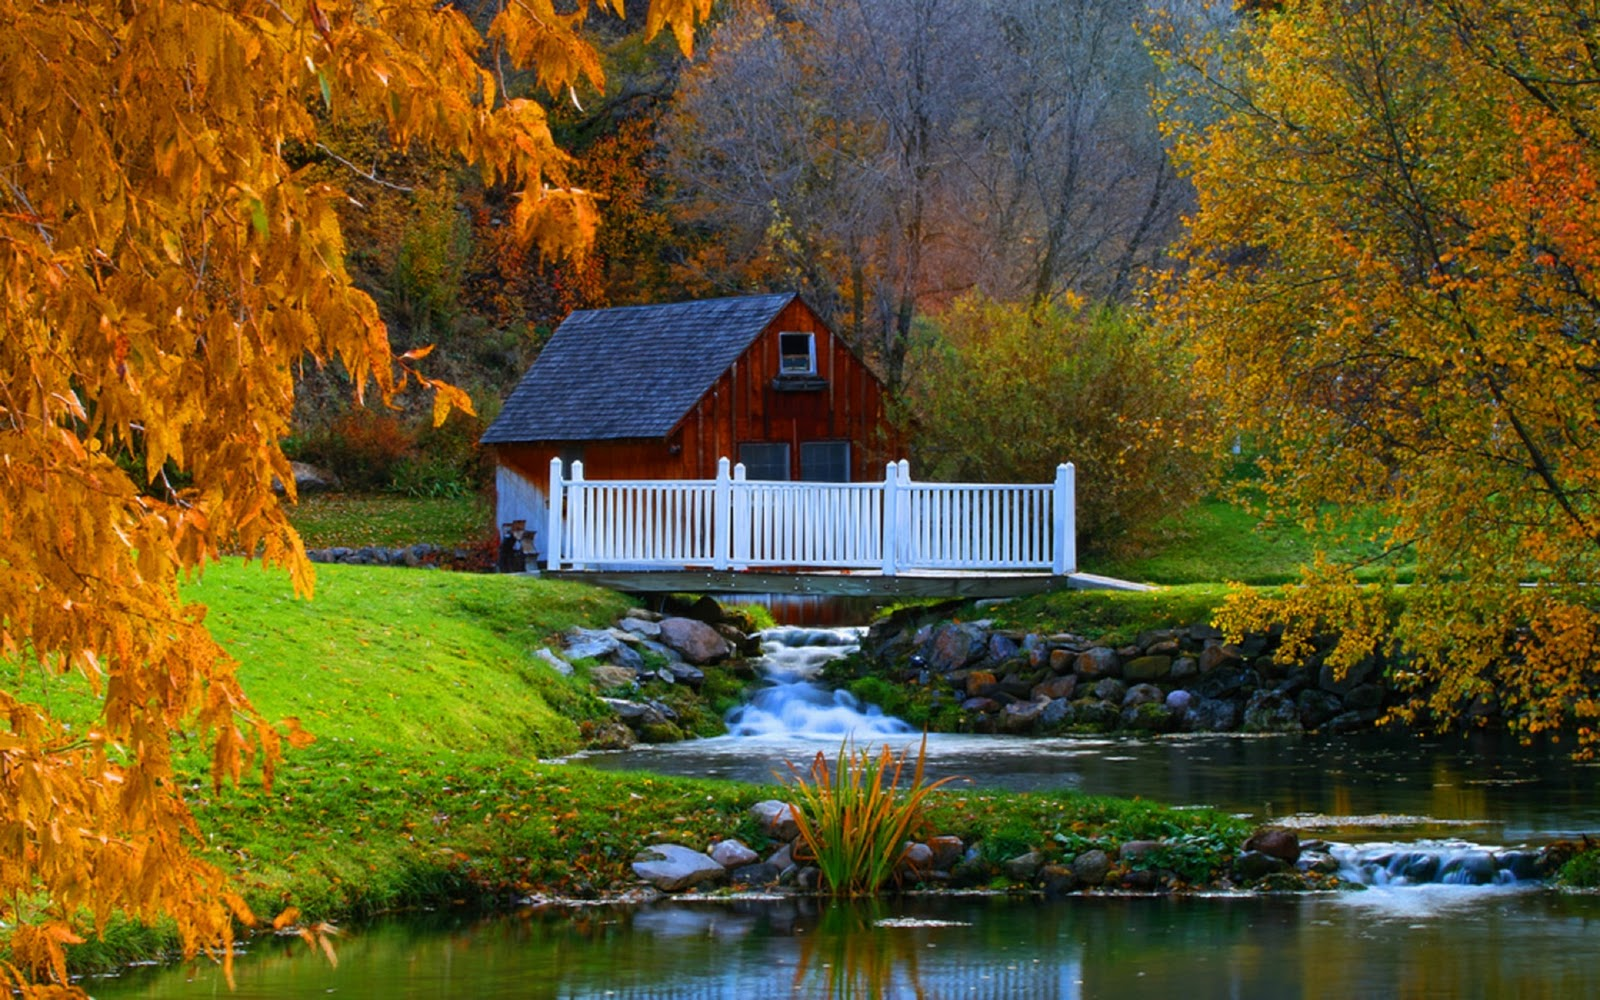 Beautiful House Hd Image Of Autumn Season Hd Wallpapers Nice Wallpapers